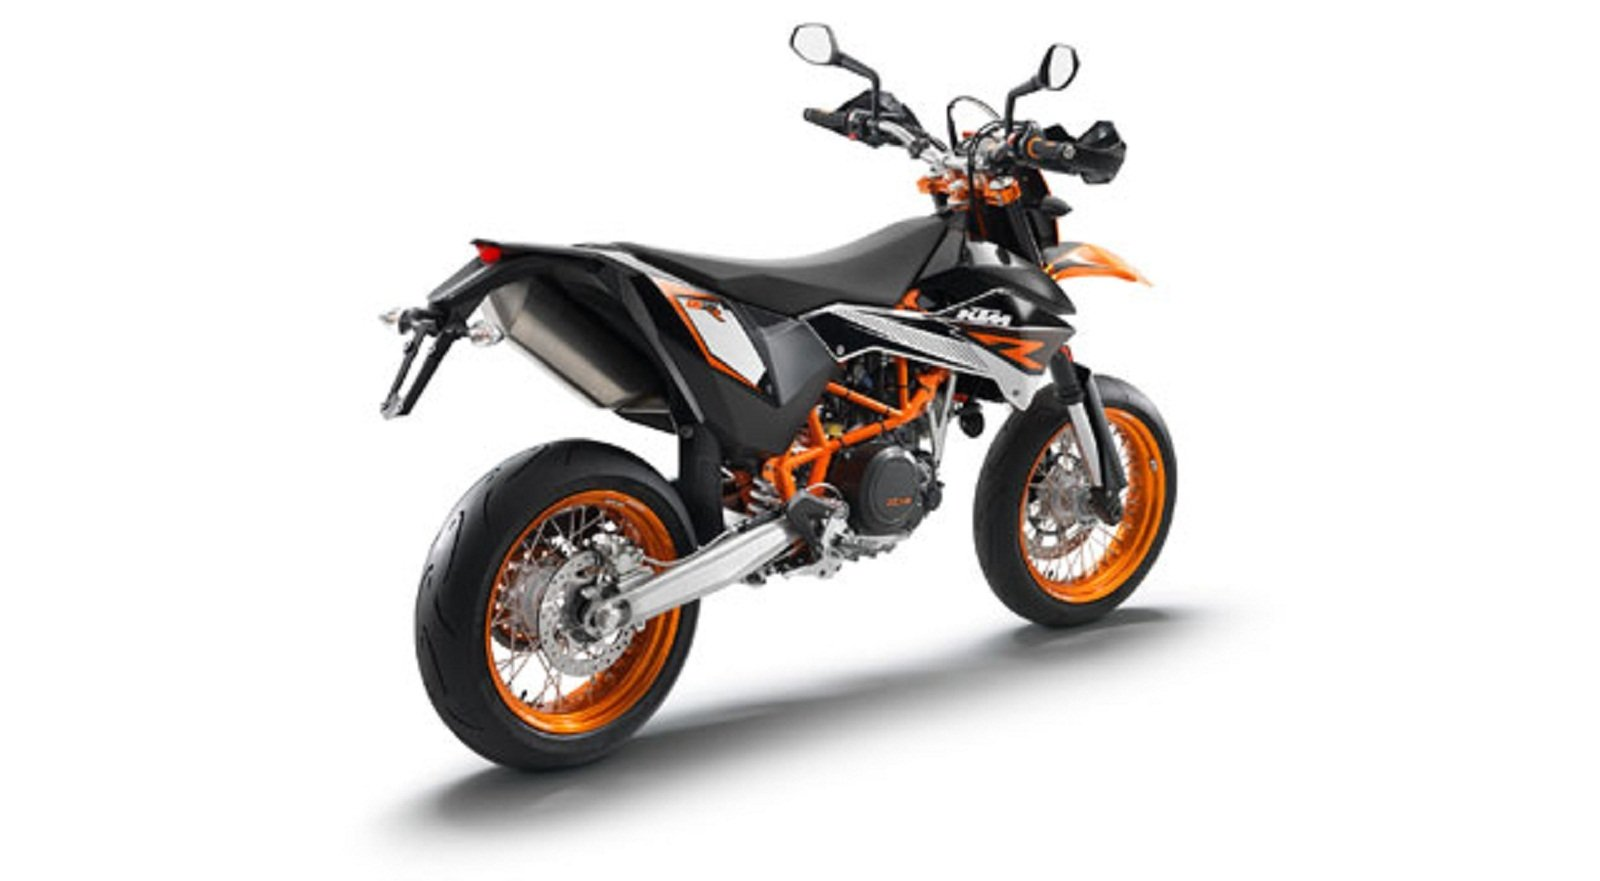 2012 ktm 690 smc r picture 436260 motorcycle review top speed. Black Bedroom Furniture Sets. Home Design Ideas